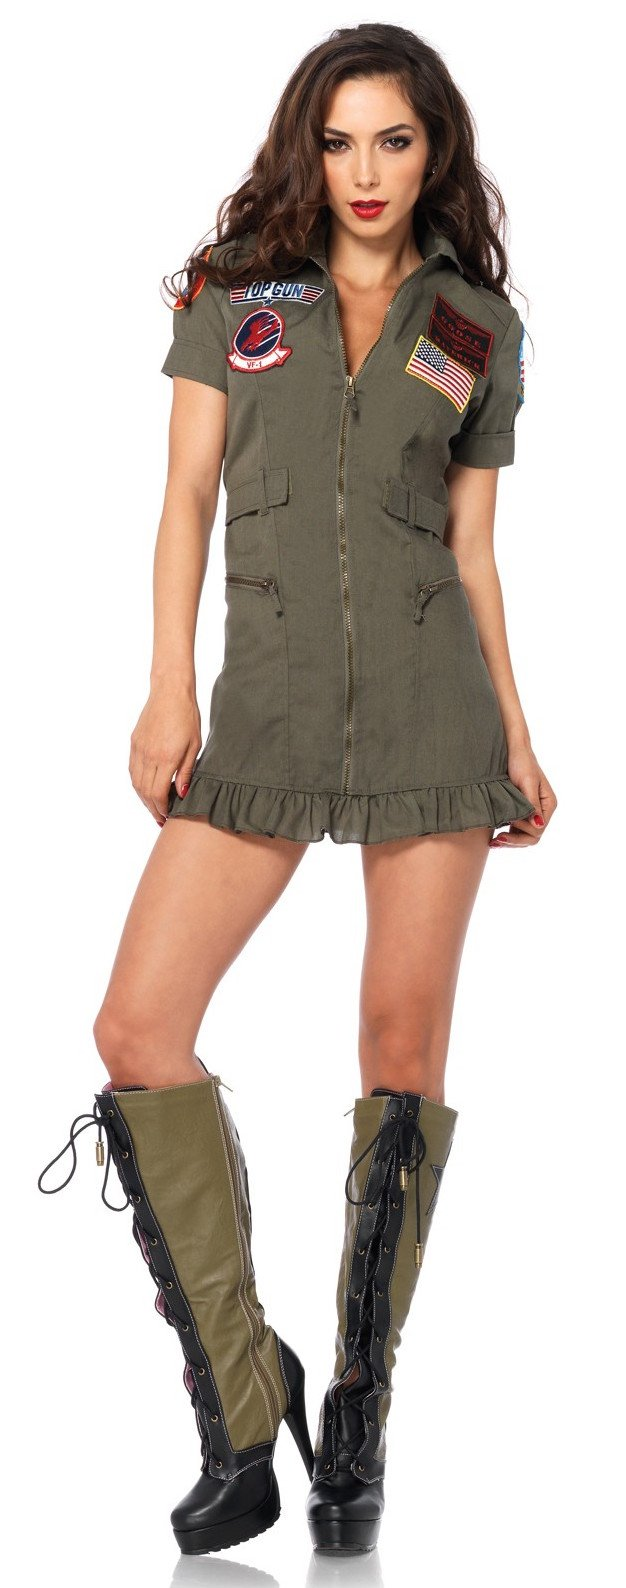 top gun women's flight dress costume